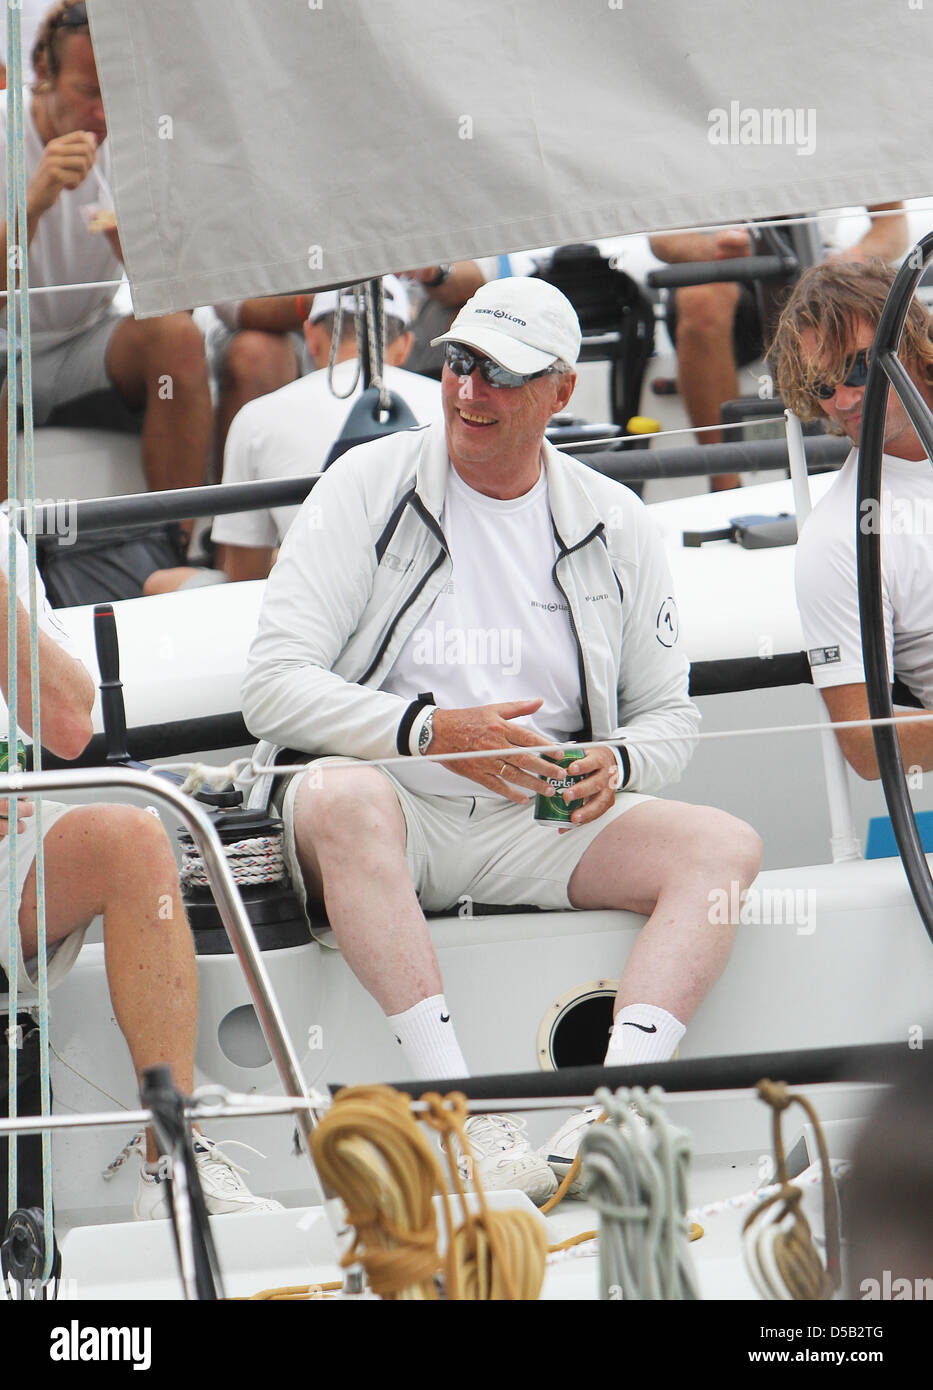 King Harald of Norway attends the third day of the 29th edition of the Sailing King's Cup (Copa del Rey) on - Stock Image